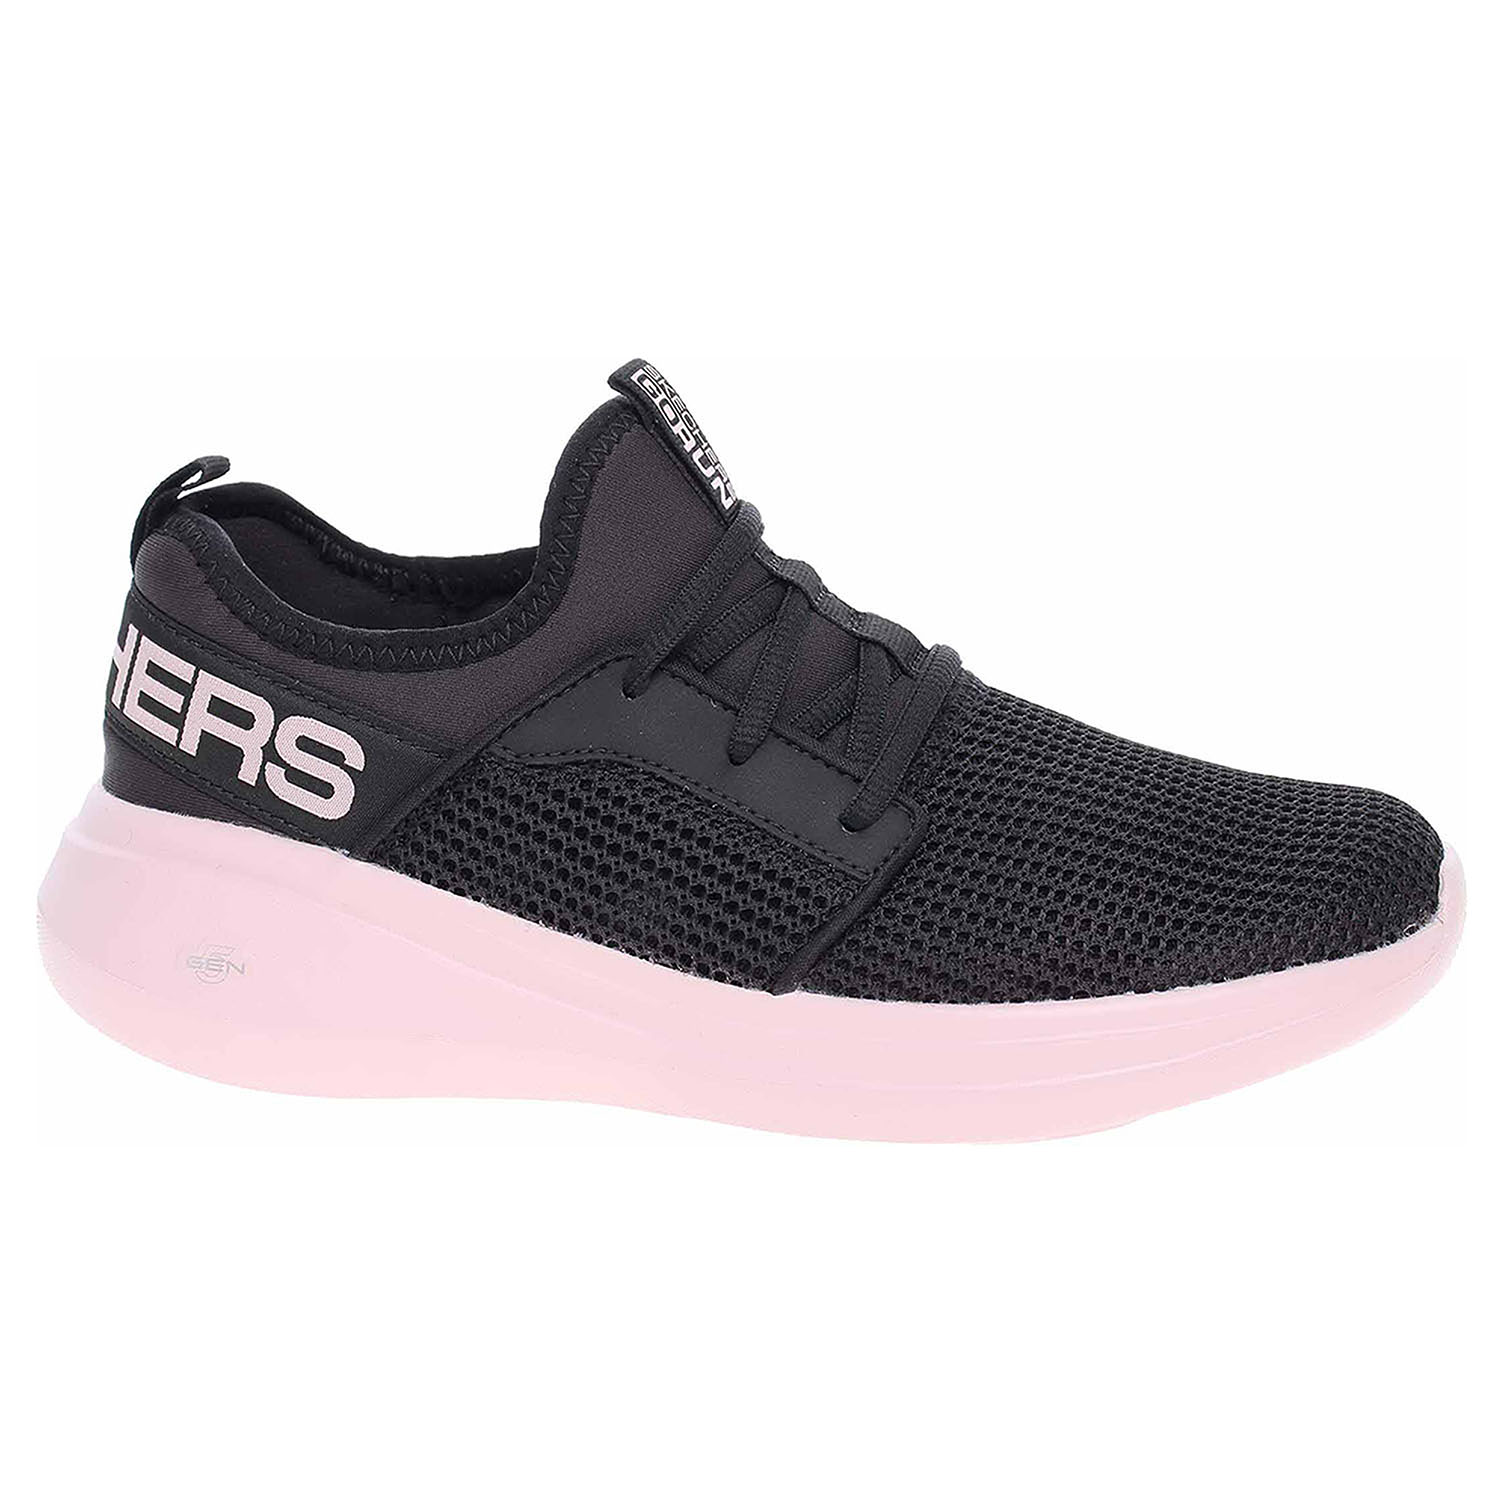 Skechers Go Run Fast - Quick Step black-pink 128010 BKPK 39